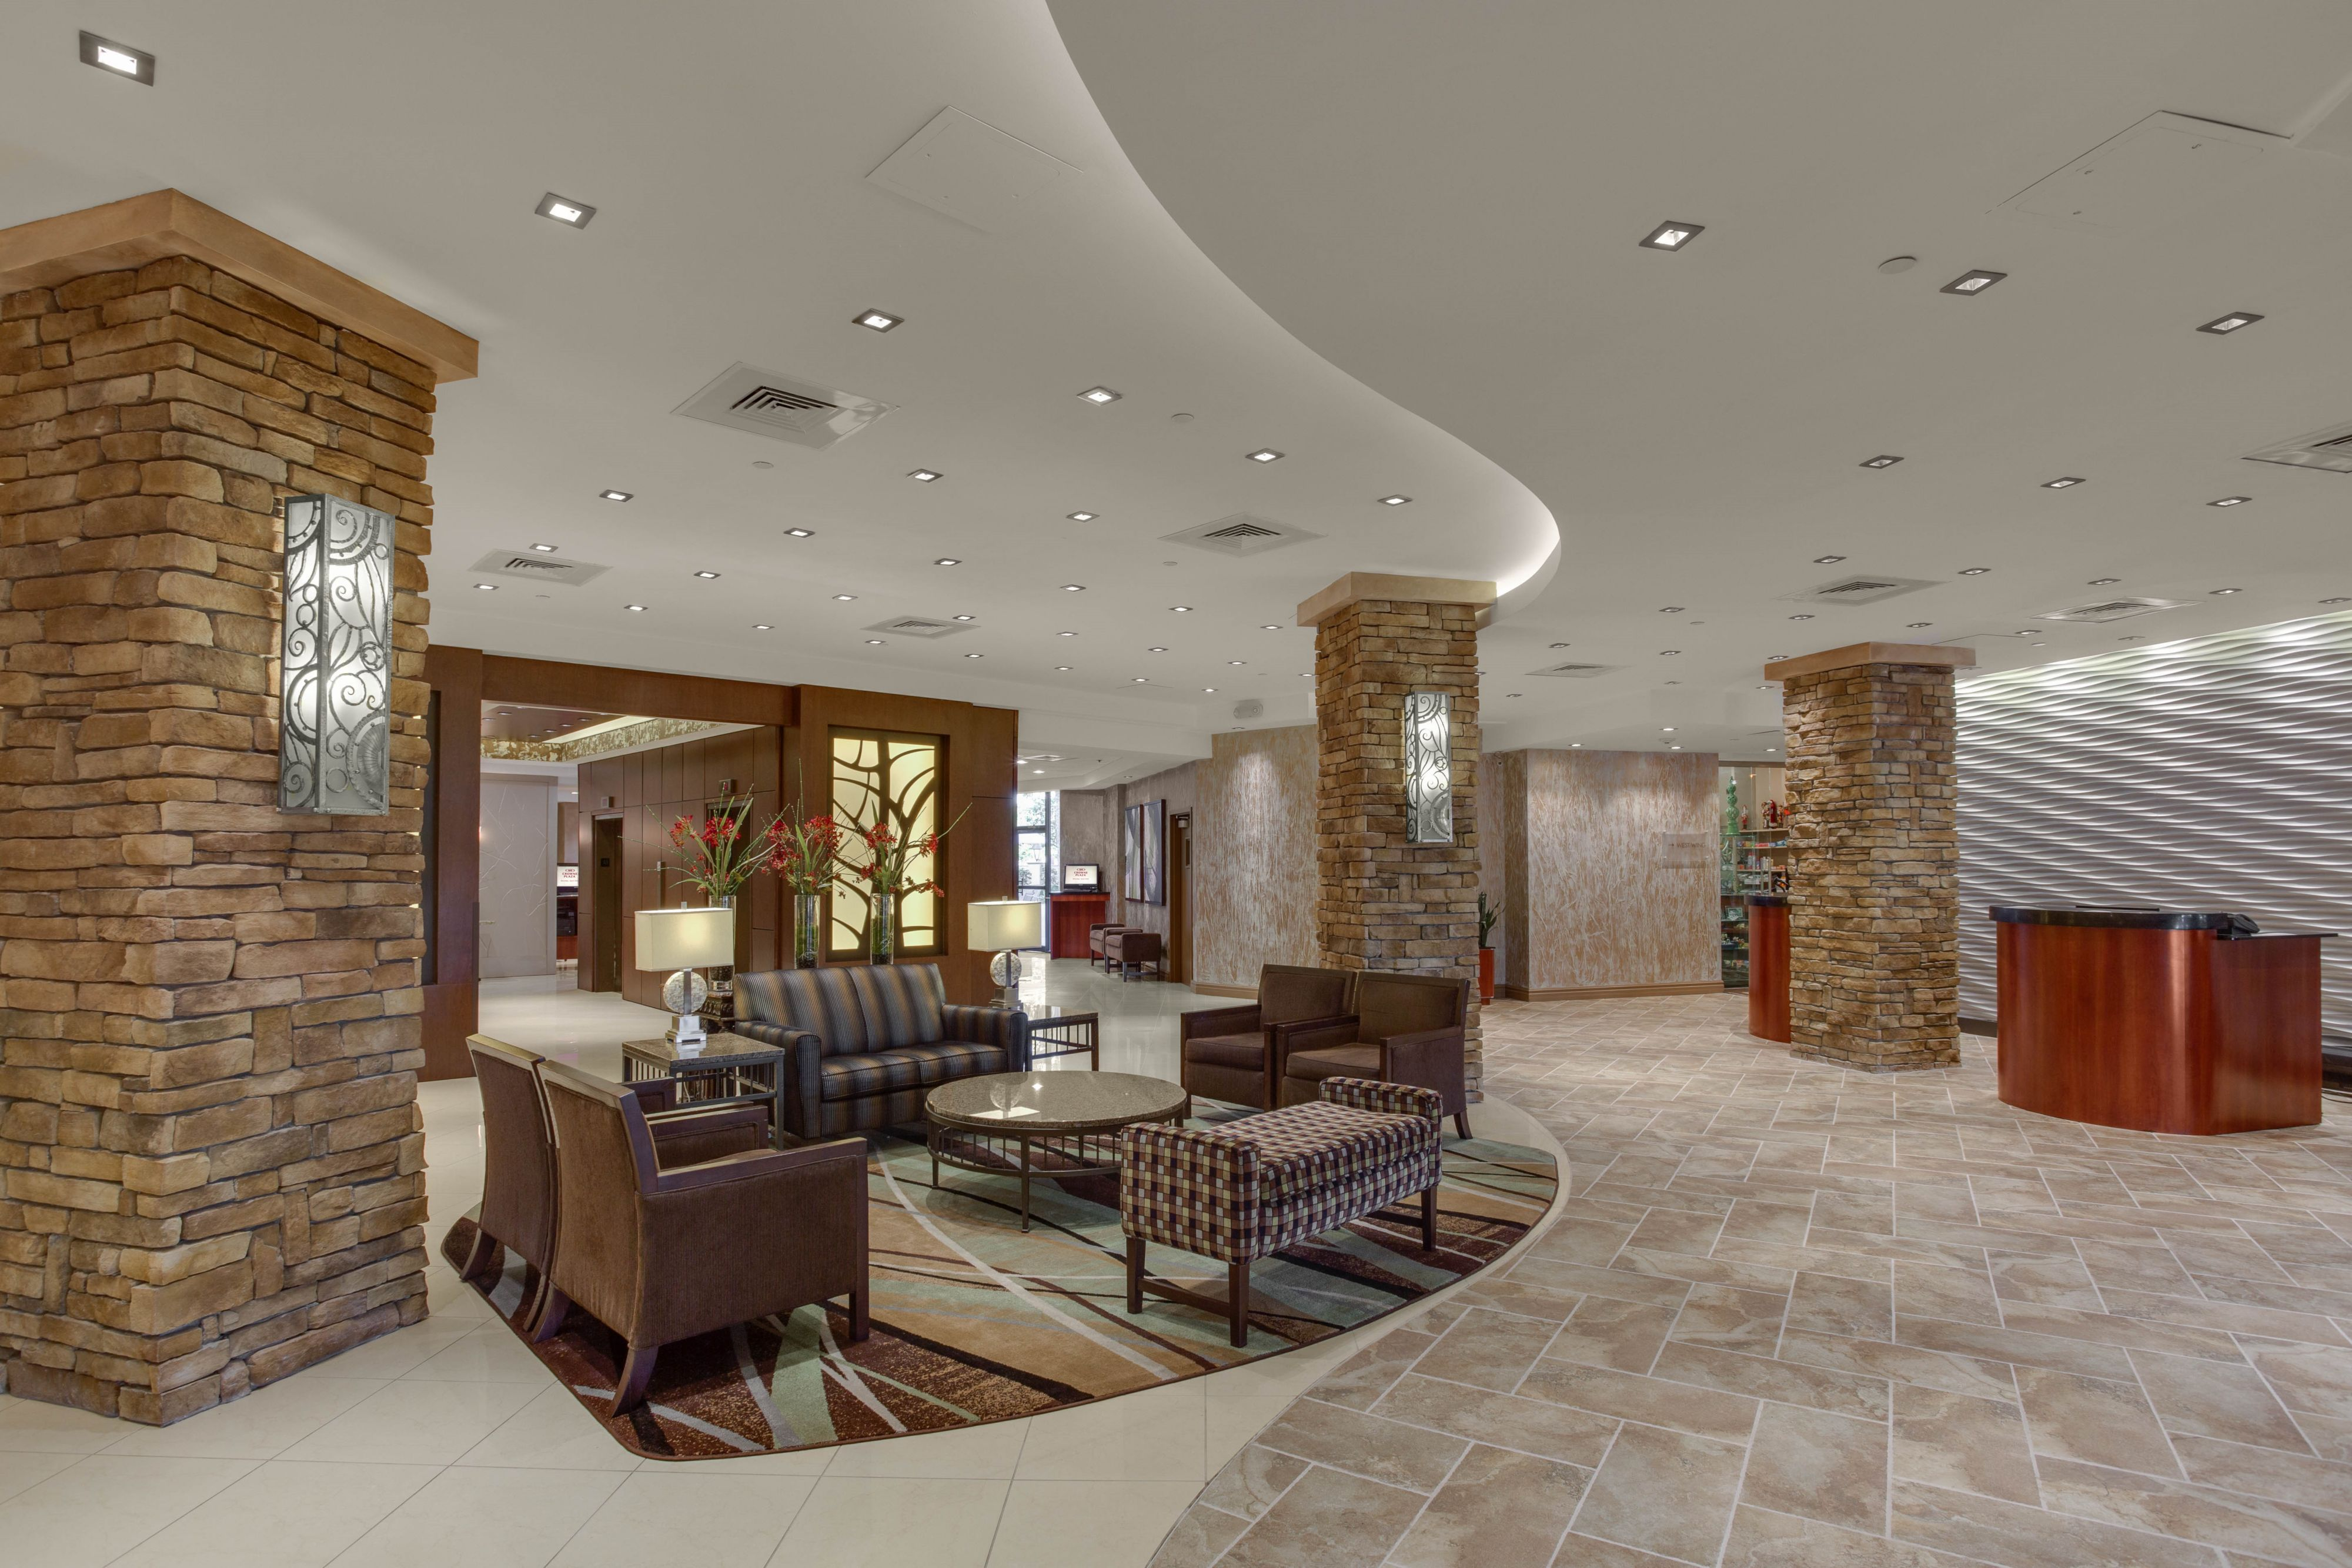 Crowne Plaza Executive Center Baton Rouge In Baton Rouge La Whitepages